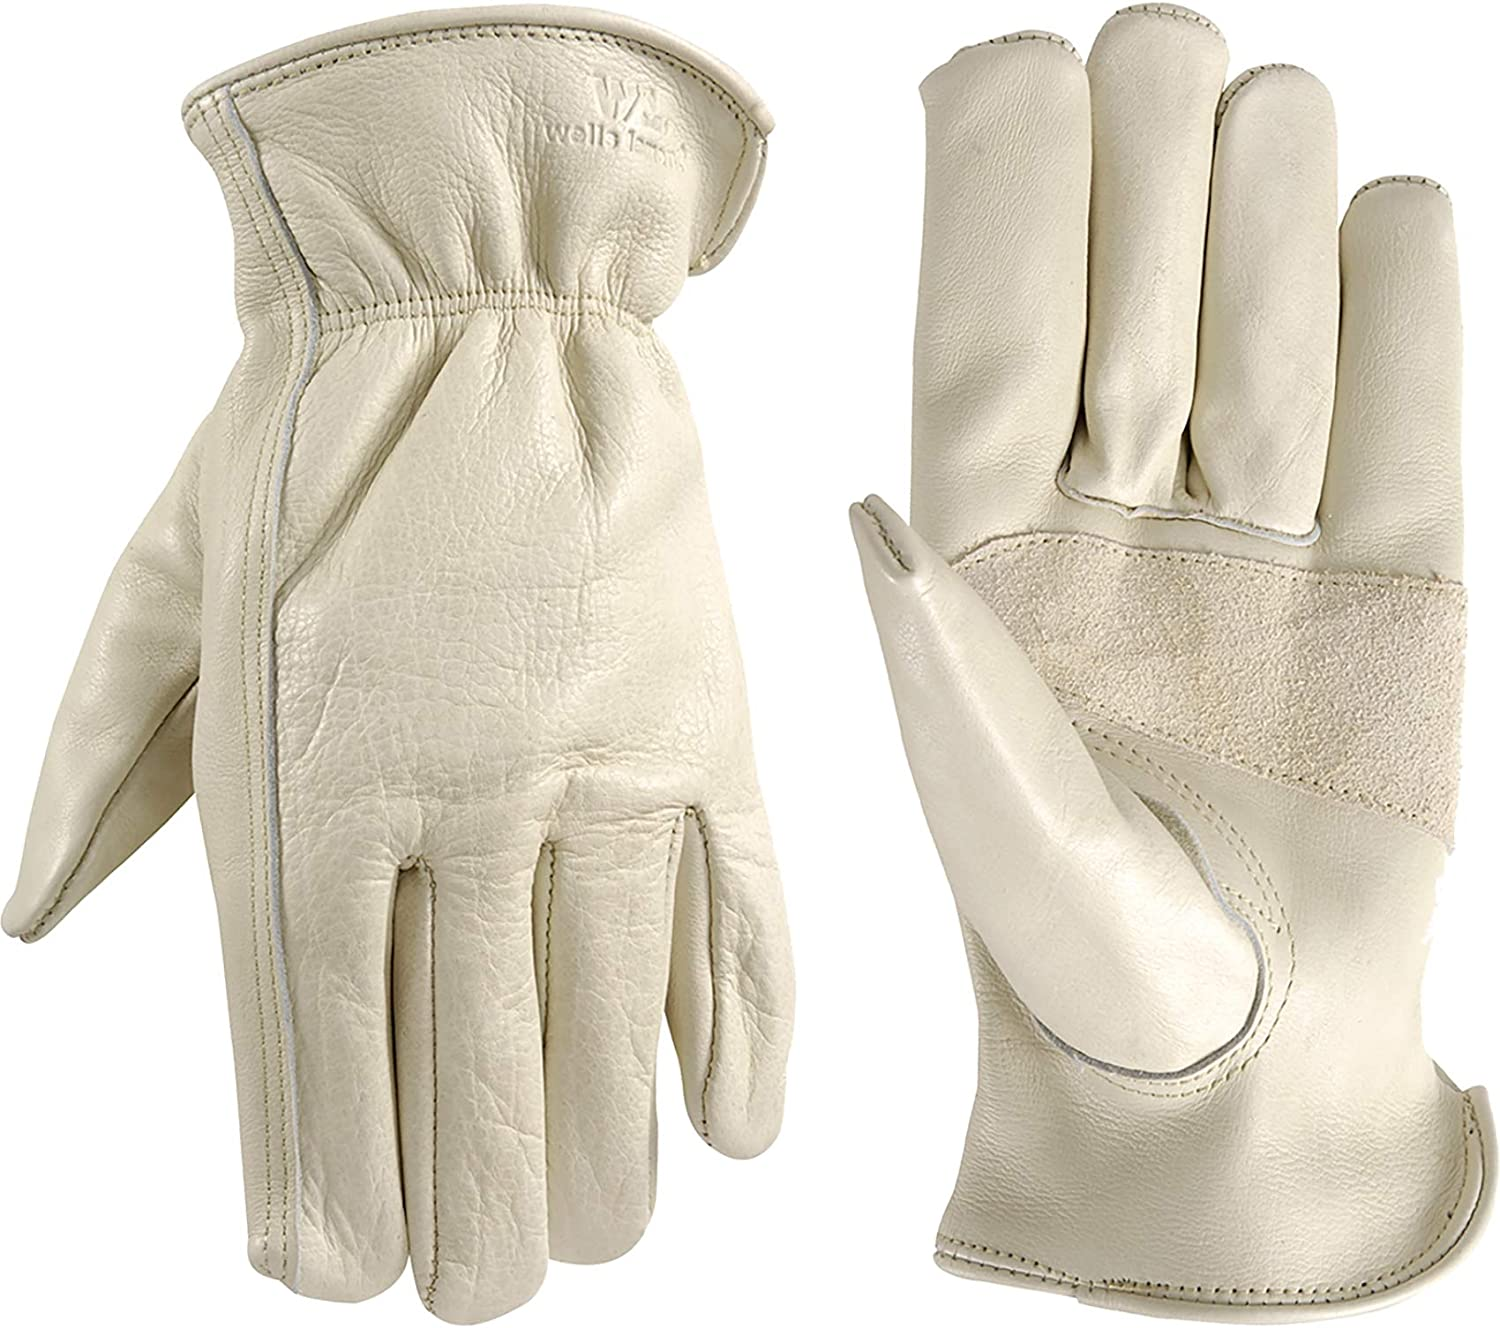 Leather Work Gloves with Reinforced Palm, DIY, Yardwork, Construction, Motorcycle, X-Large (Wells Lamont 1130XL)